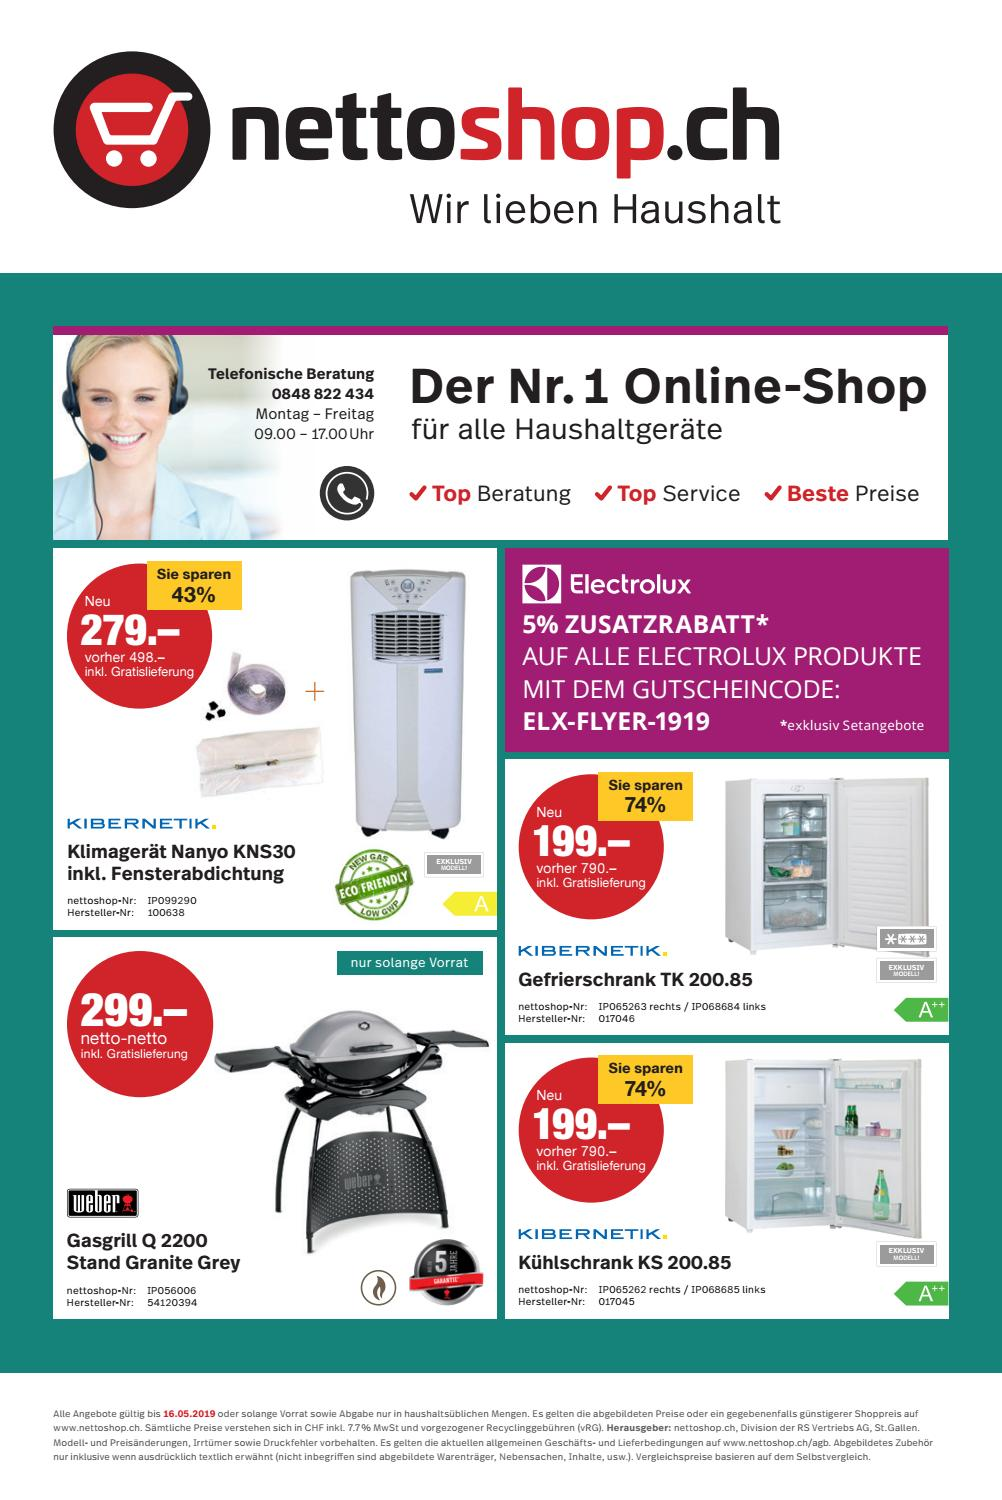 Klimagerät Nettoshop Nettoshop Ch Flyer 19 19 Deutsch Mai 2019 By Nettoshop Ch